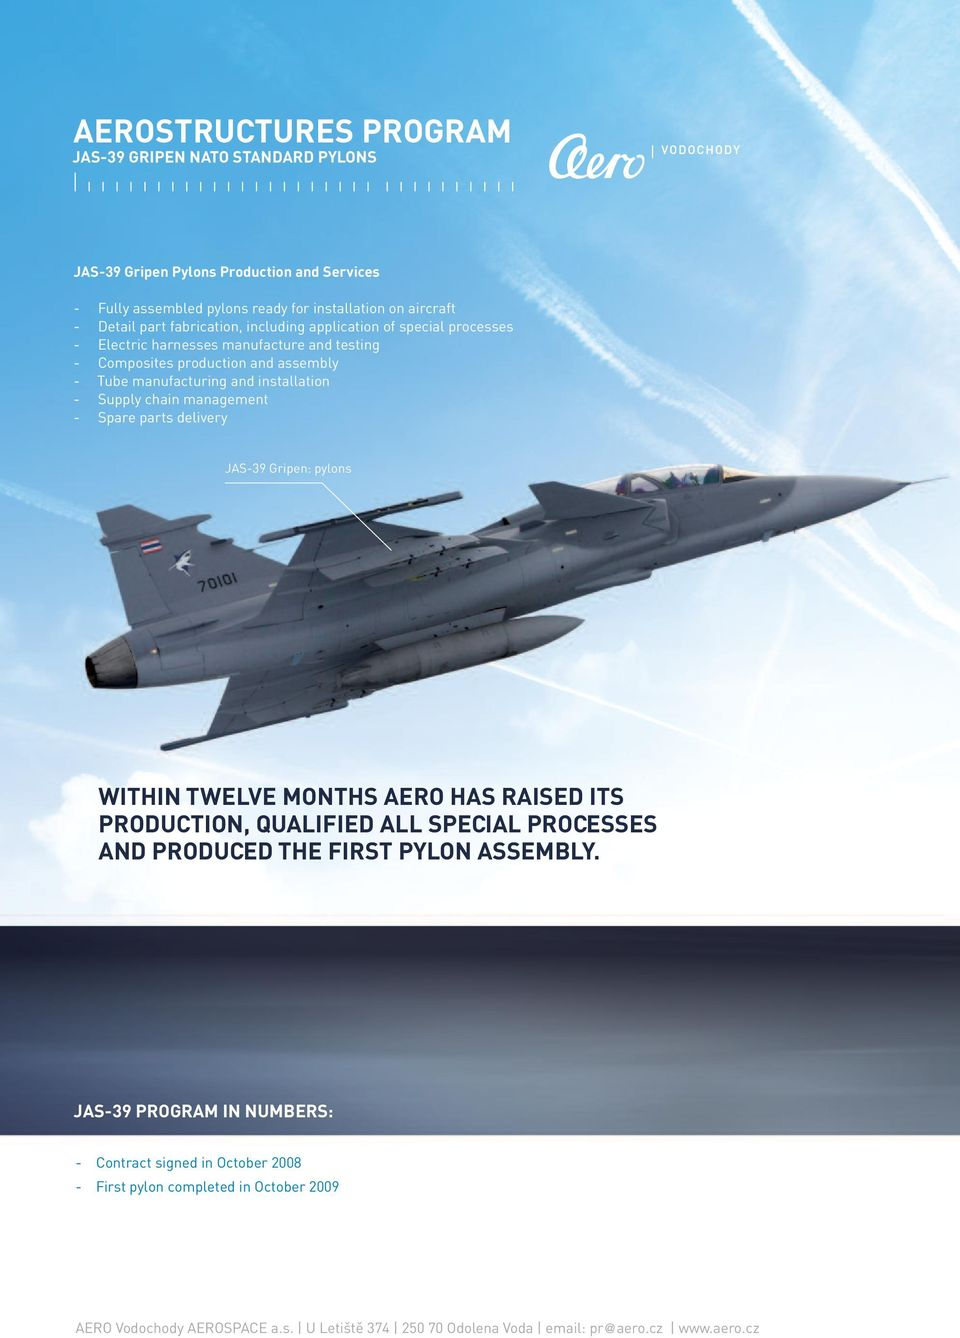 manufacturing and installation - Supply chain management - Spare parts delivery JAS-39 Gripen: pylons WITHIN TWELVE MONTHS AERO HAS RAISED ITS PRODUCTION,